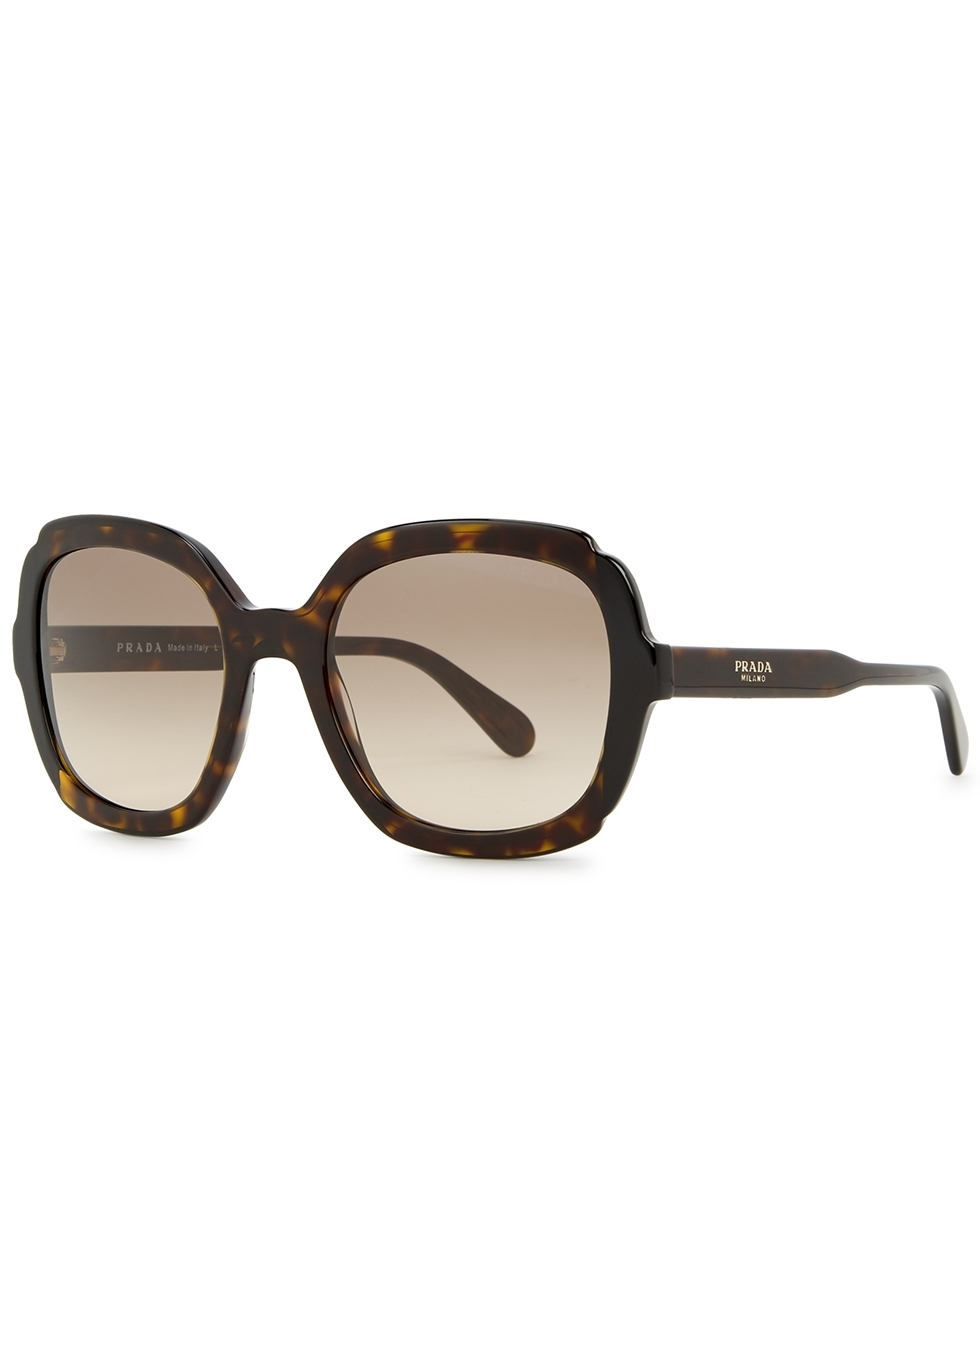 89ffdd19109 Women s Designer Sunglasses and Eyewear - Harvey Nichols